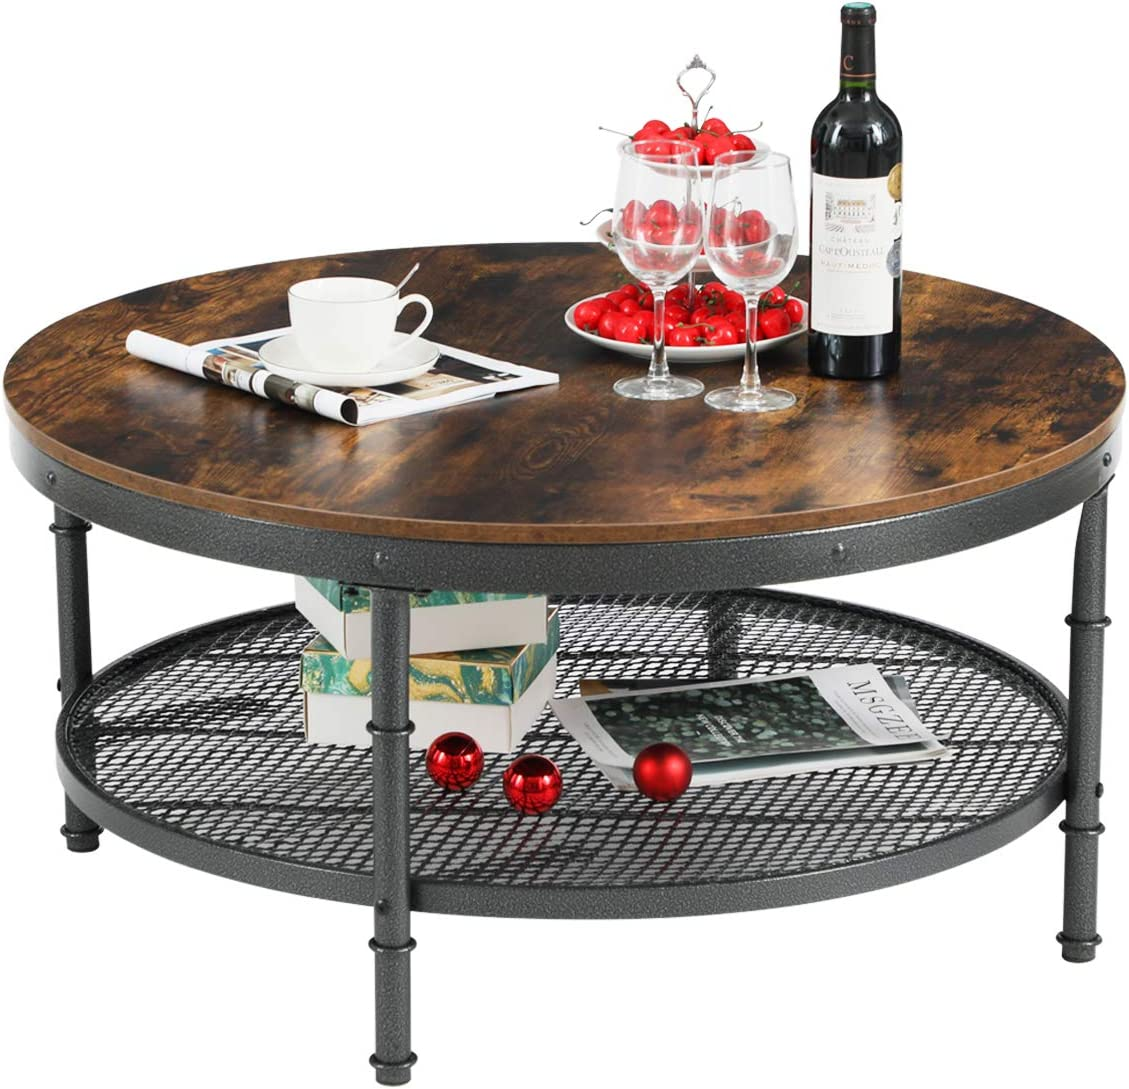 GreenForest 35.8 Round Coffee Table 2-Tier Cocktail Table with Storage Steel Mesh Shelf, Industrial Accent Table with Metal Frame for Living Room, Rustic Brown